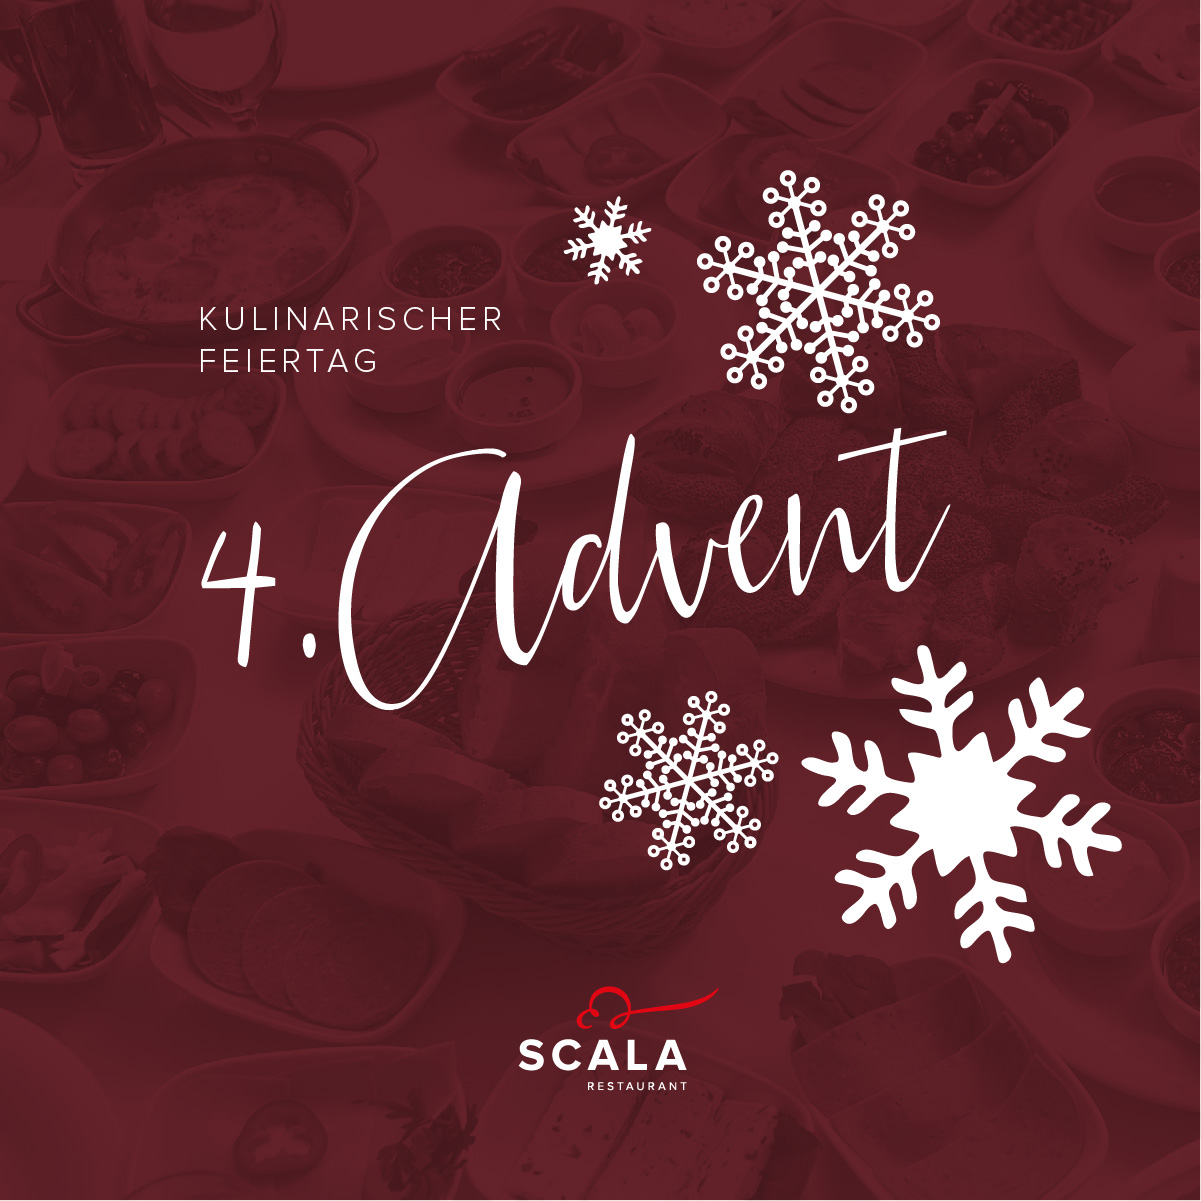 kulinarischer feiertag 4 advent restaurant scala chemnitz. Black Bedroom Furniture Sets. Home Design Ideas